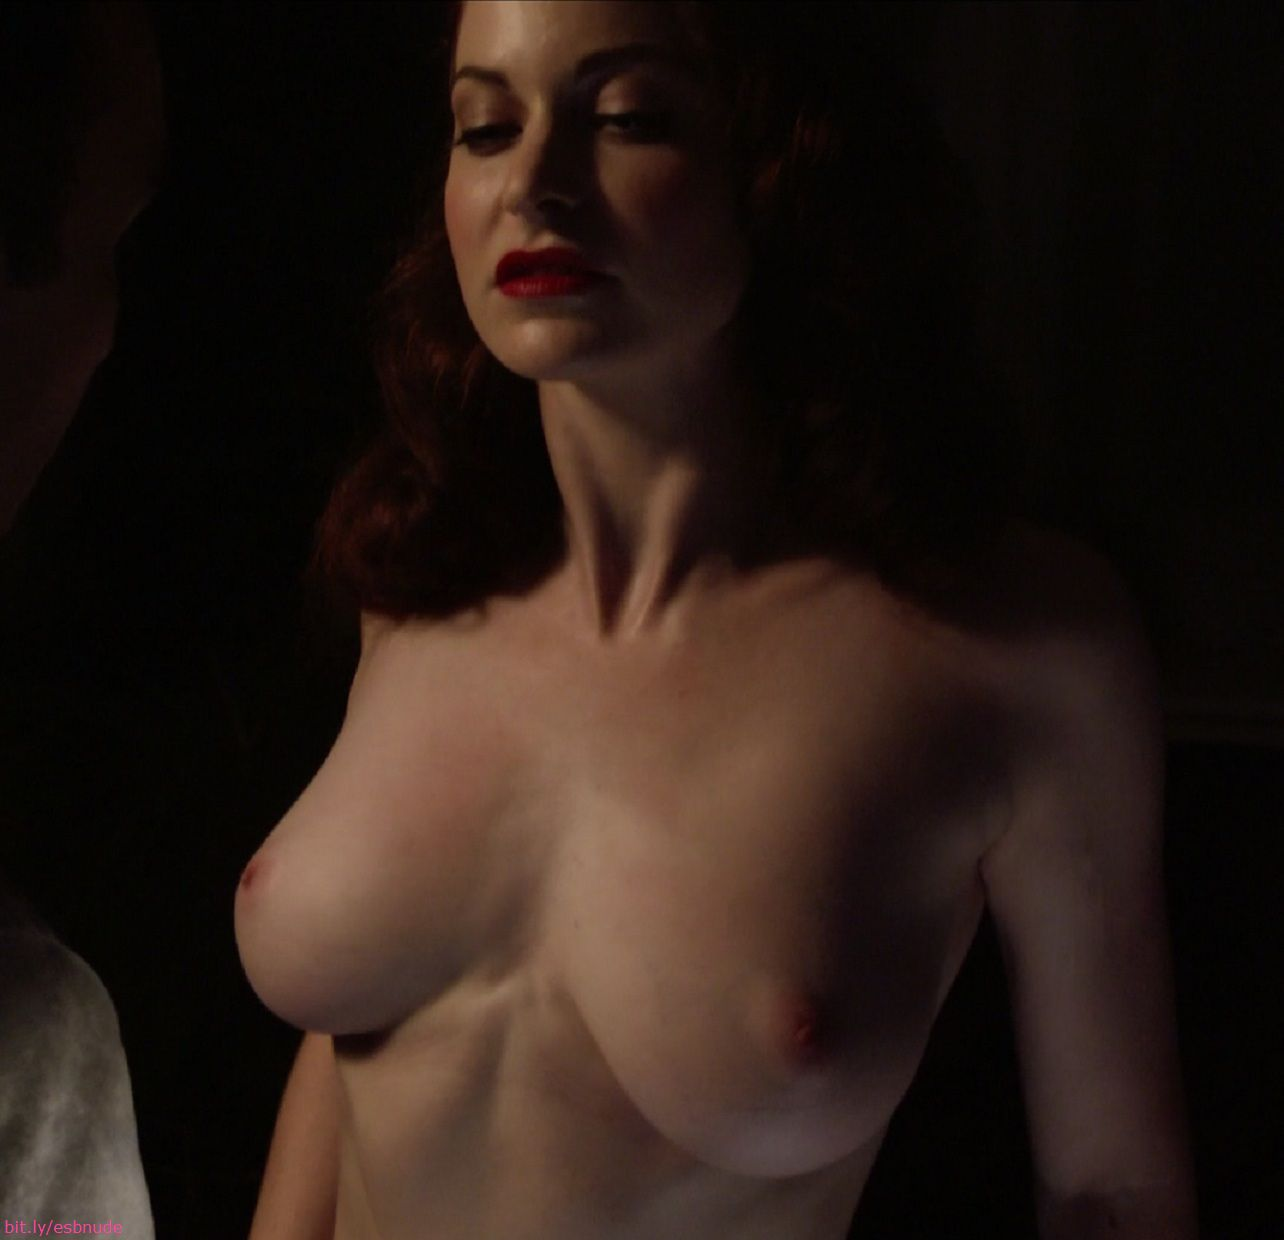 Esme Bianco Hot inside esmé bianco nude - the busty whore from game of thrones (21 pics)